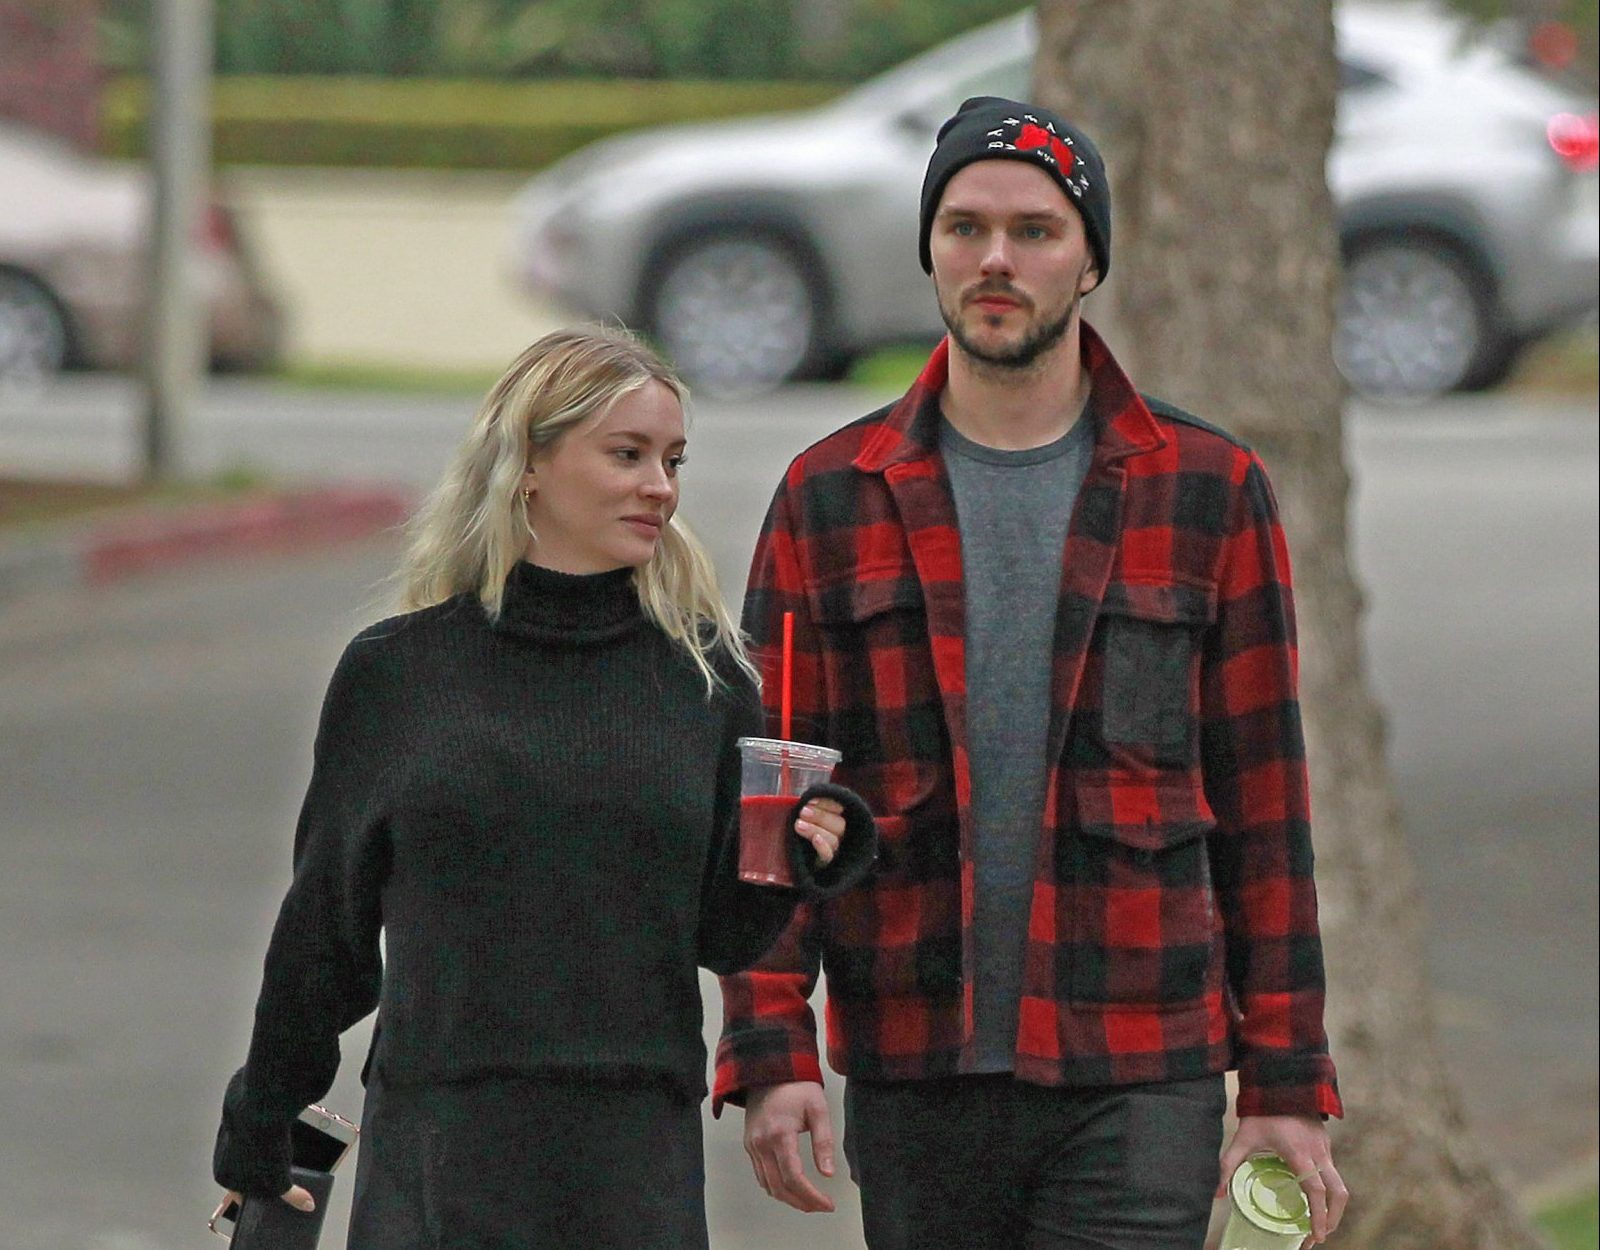 Nicholas Hoult and model Bryana Holly still going strong despite Jennifer Lawrence rumours